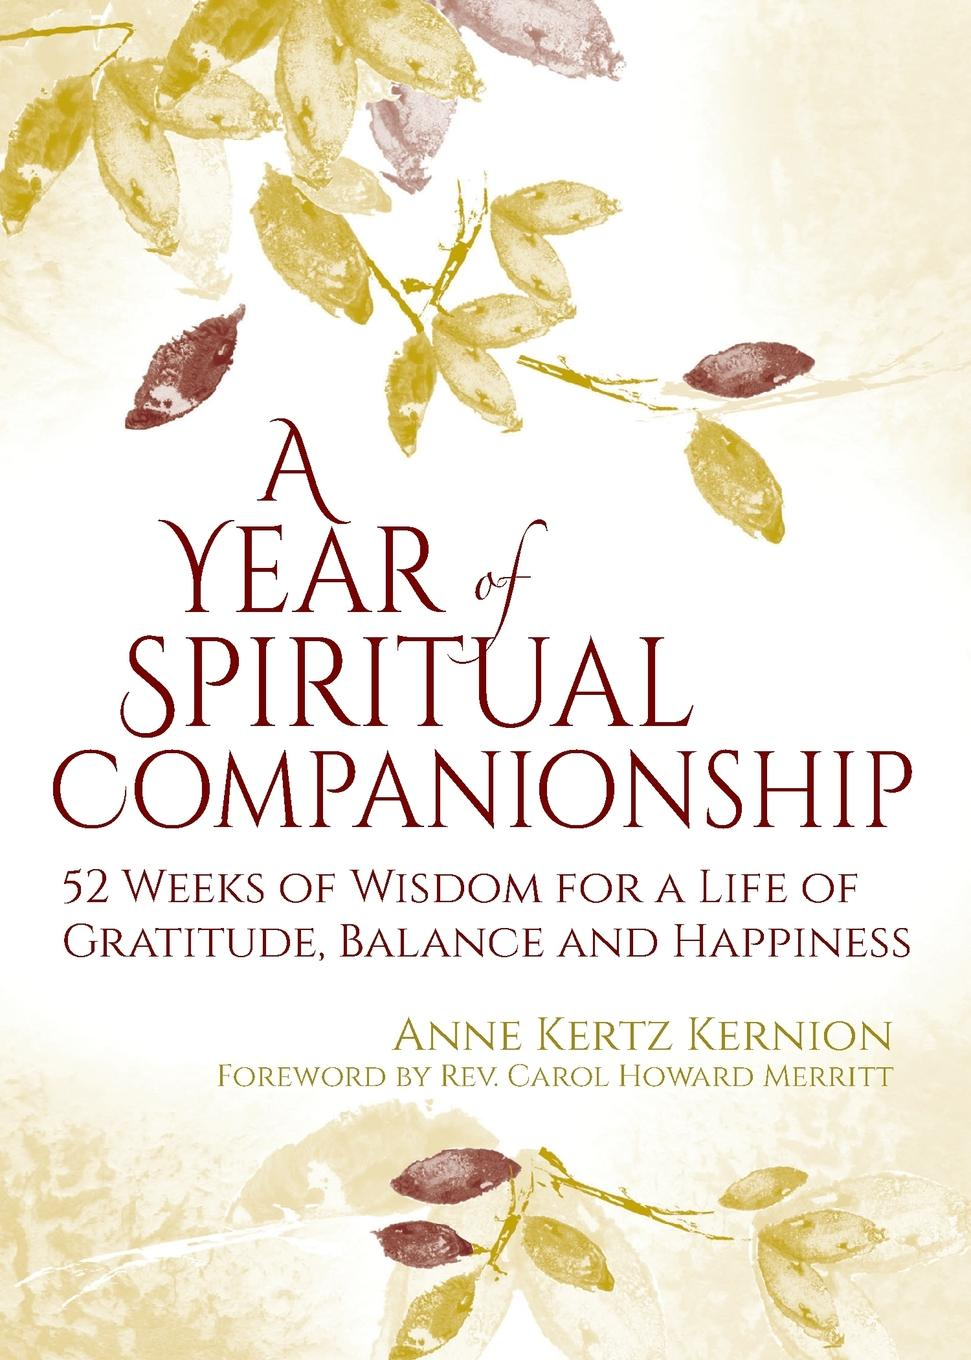 Anne Kertz Kernion A Year of Spiritual Companionship. 52 Weeks of Wisdom for a Life of Gratitude, Balance and Happiness a novykh spiritual practices and meditations